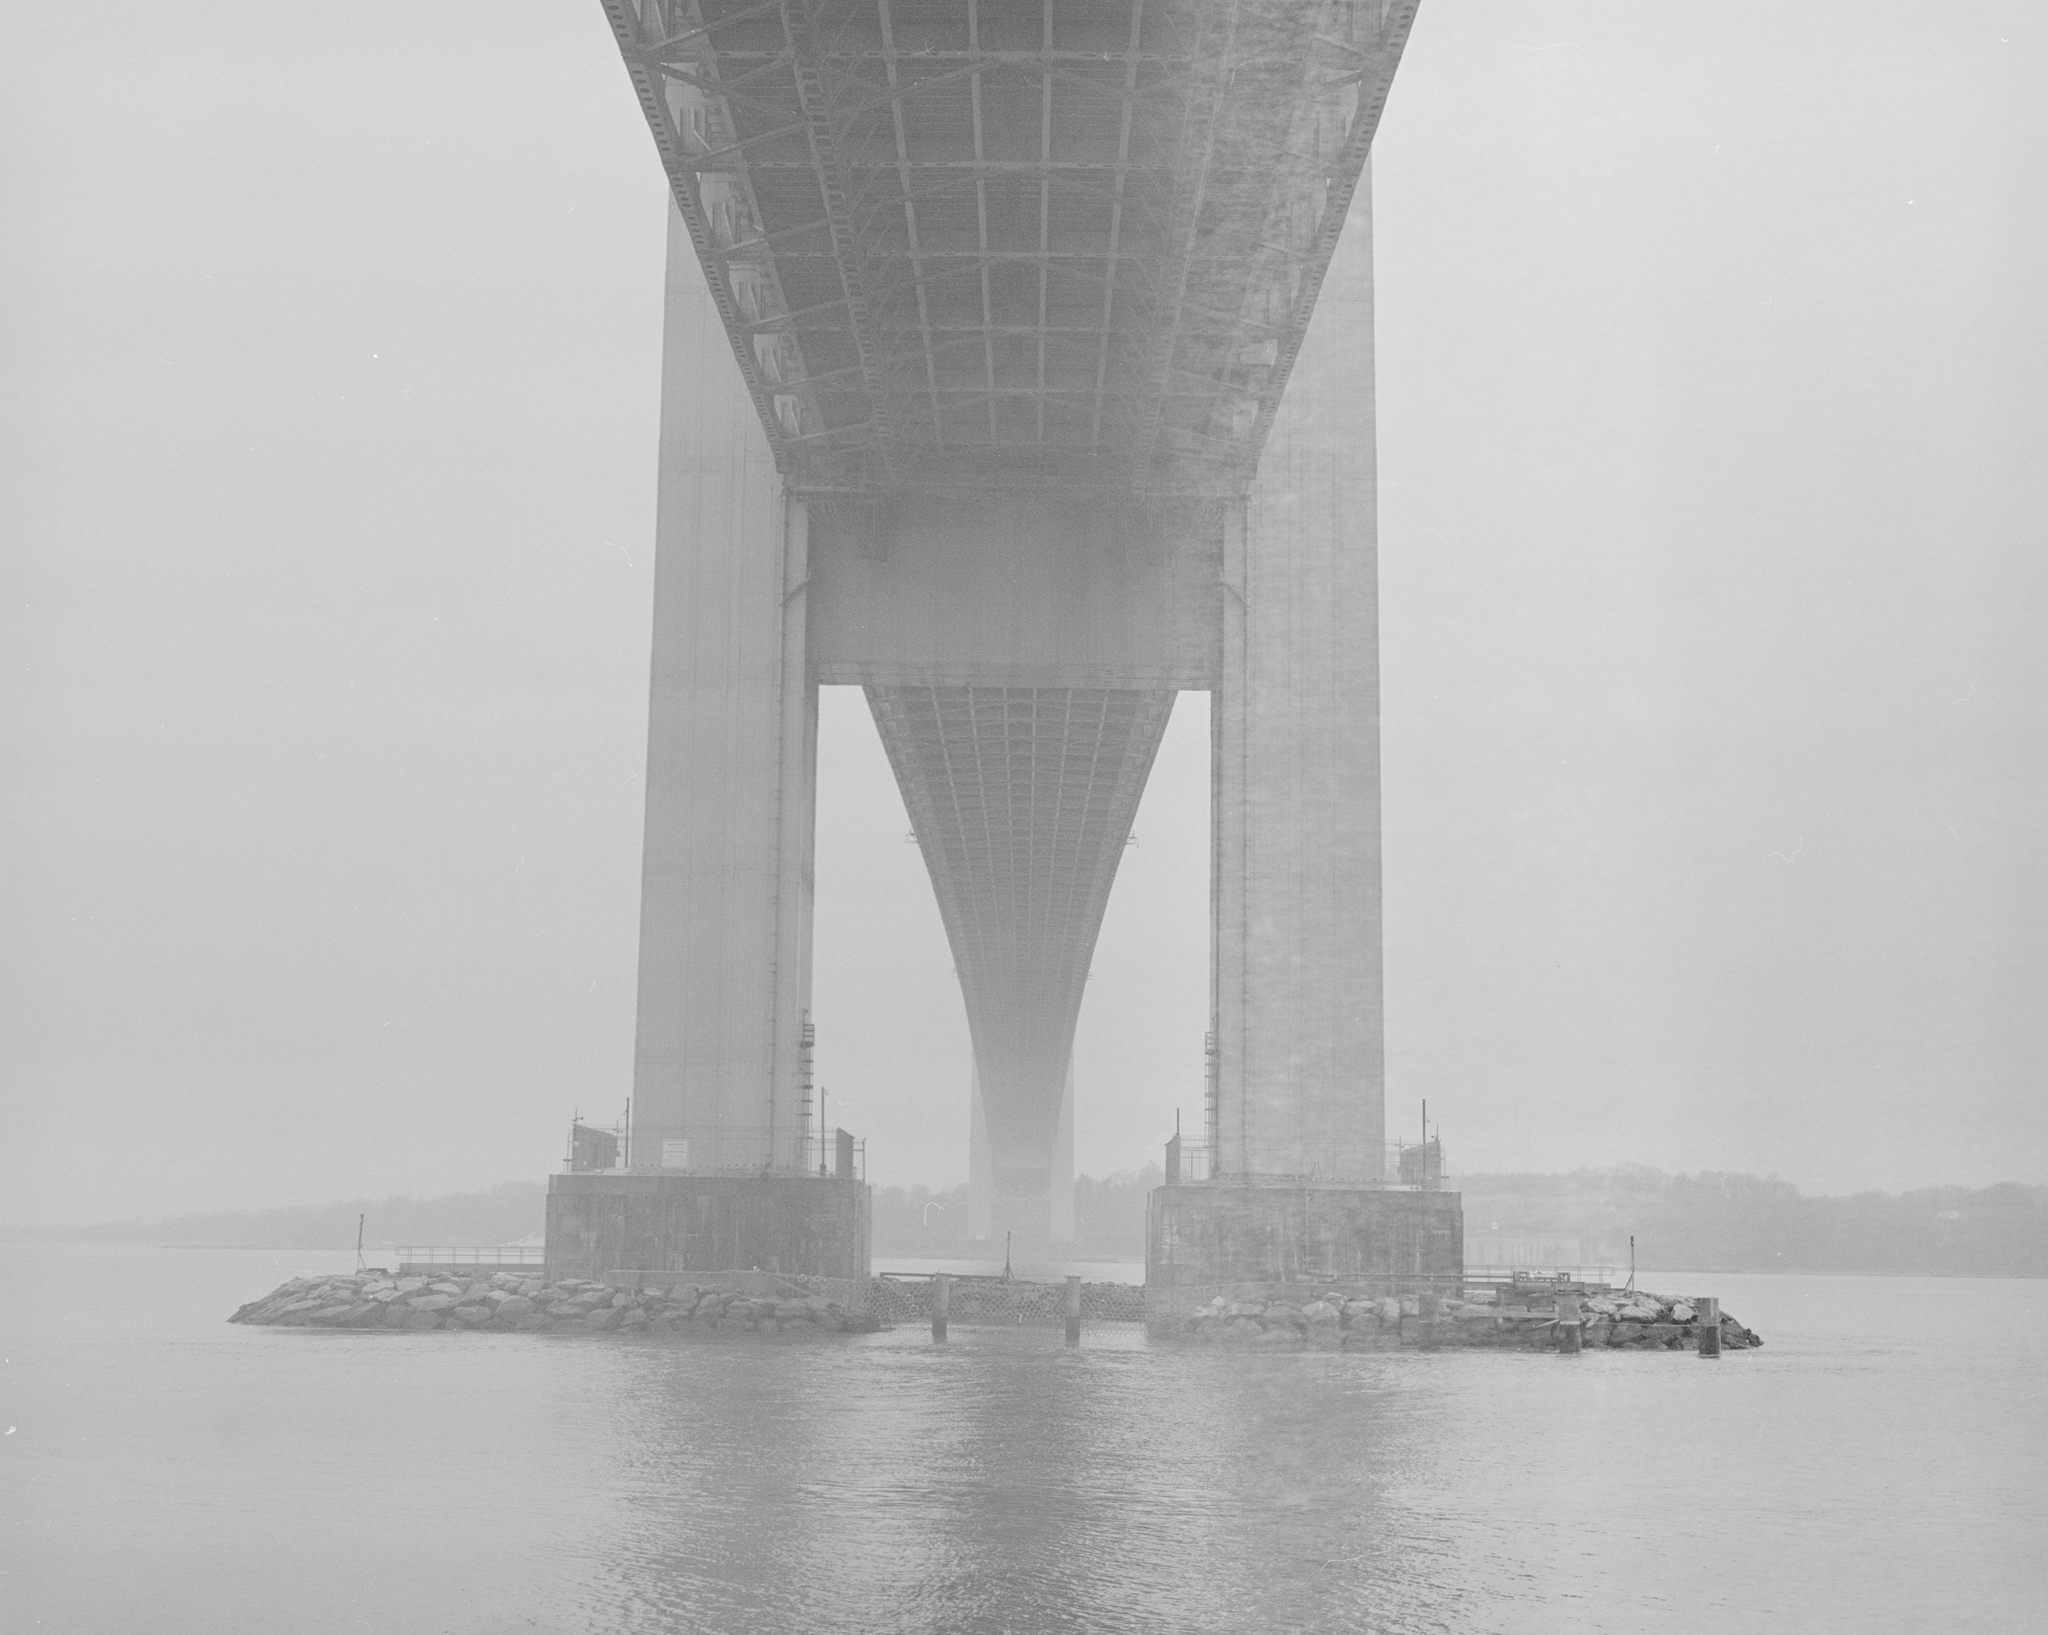 Verrazano Bridge, Brooklyn NY